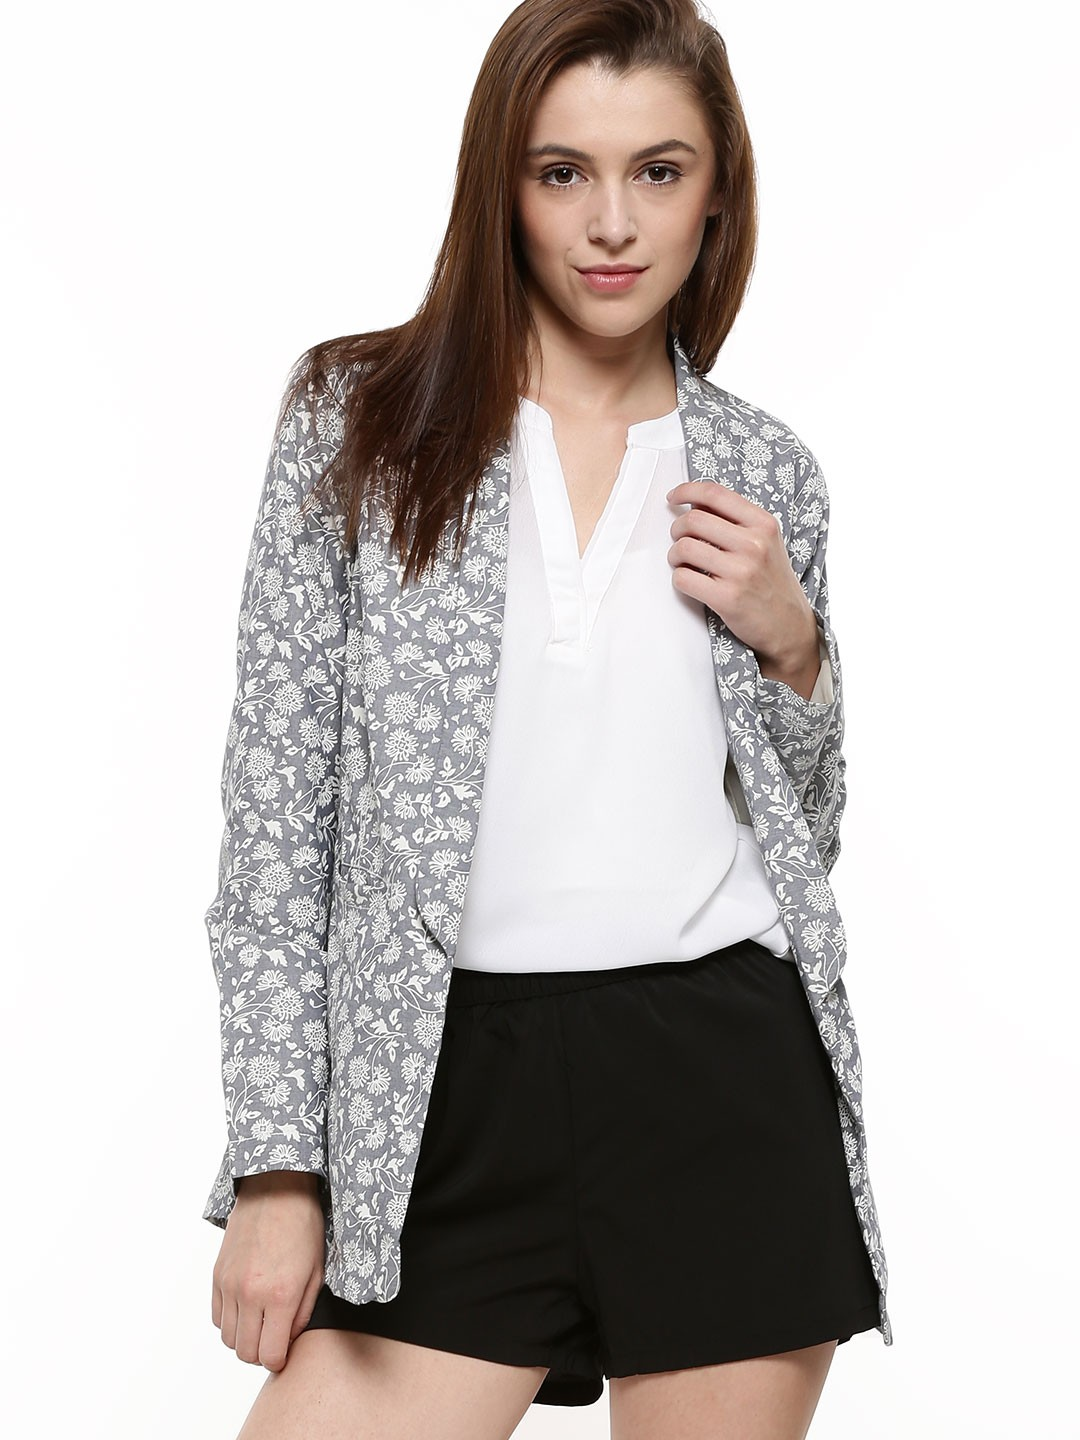 buy femella floral print oversized blazer for women women 39 s blue blazers online in india. Black Bedroom Furniture Sets. Home Design Ideas